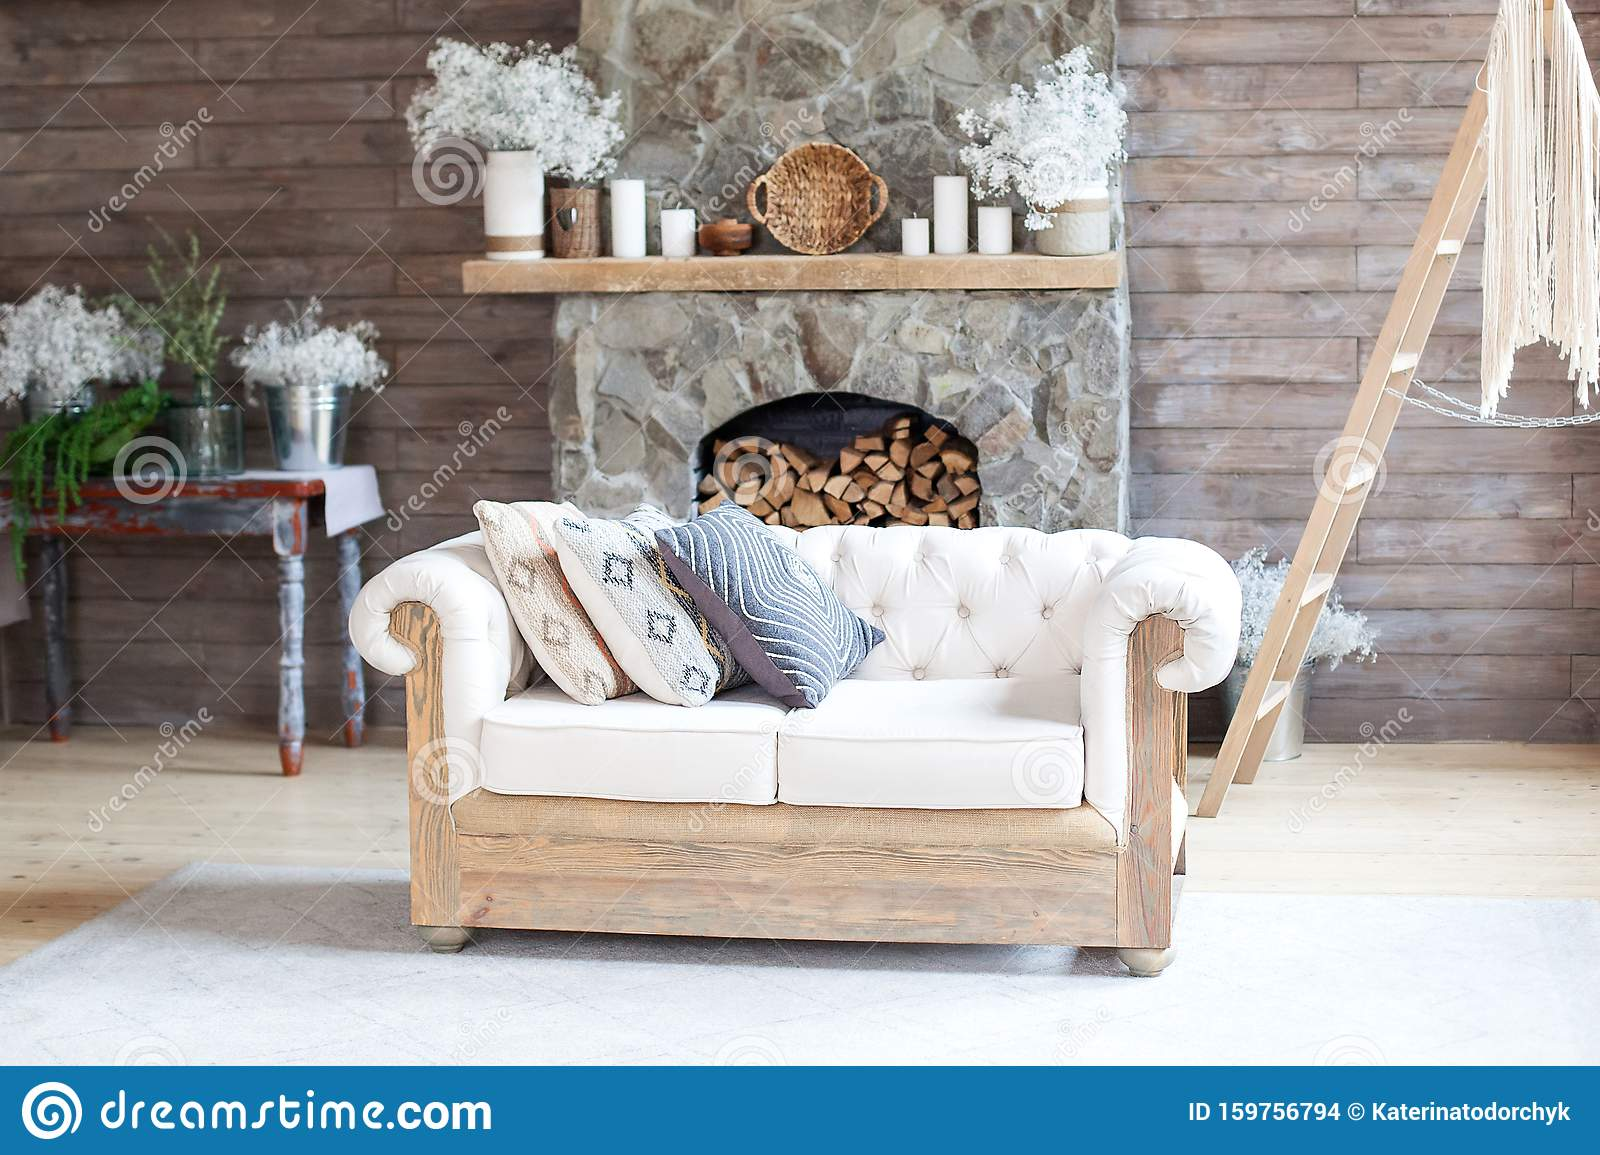 Cozy Interior Living Room White Sofa And Fireplace Rustic Home Design For Warm Indoor Space Alpine Vacation Modern Cottage Livin Stock Photo Image Of Christmas Indoor 159756794